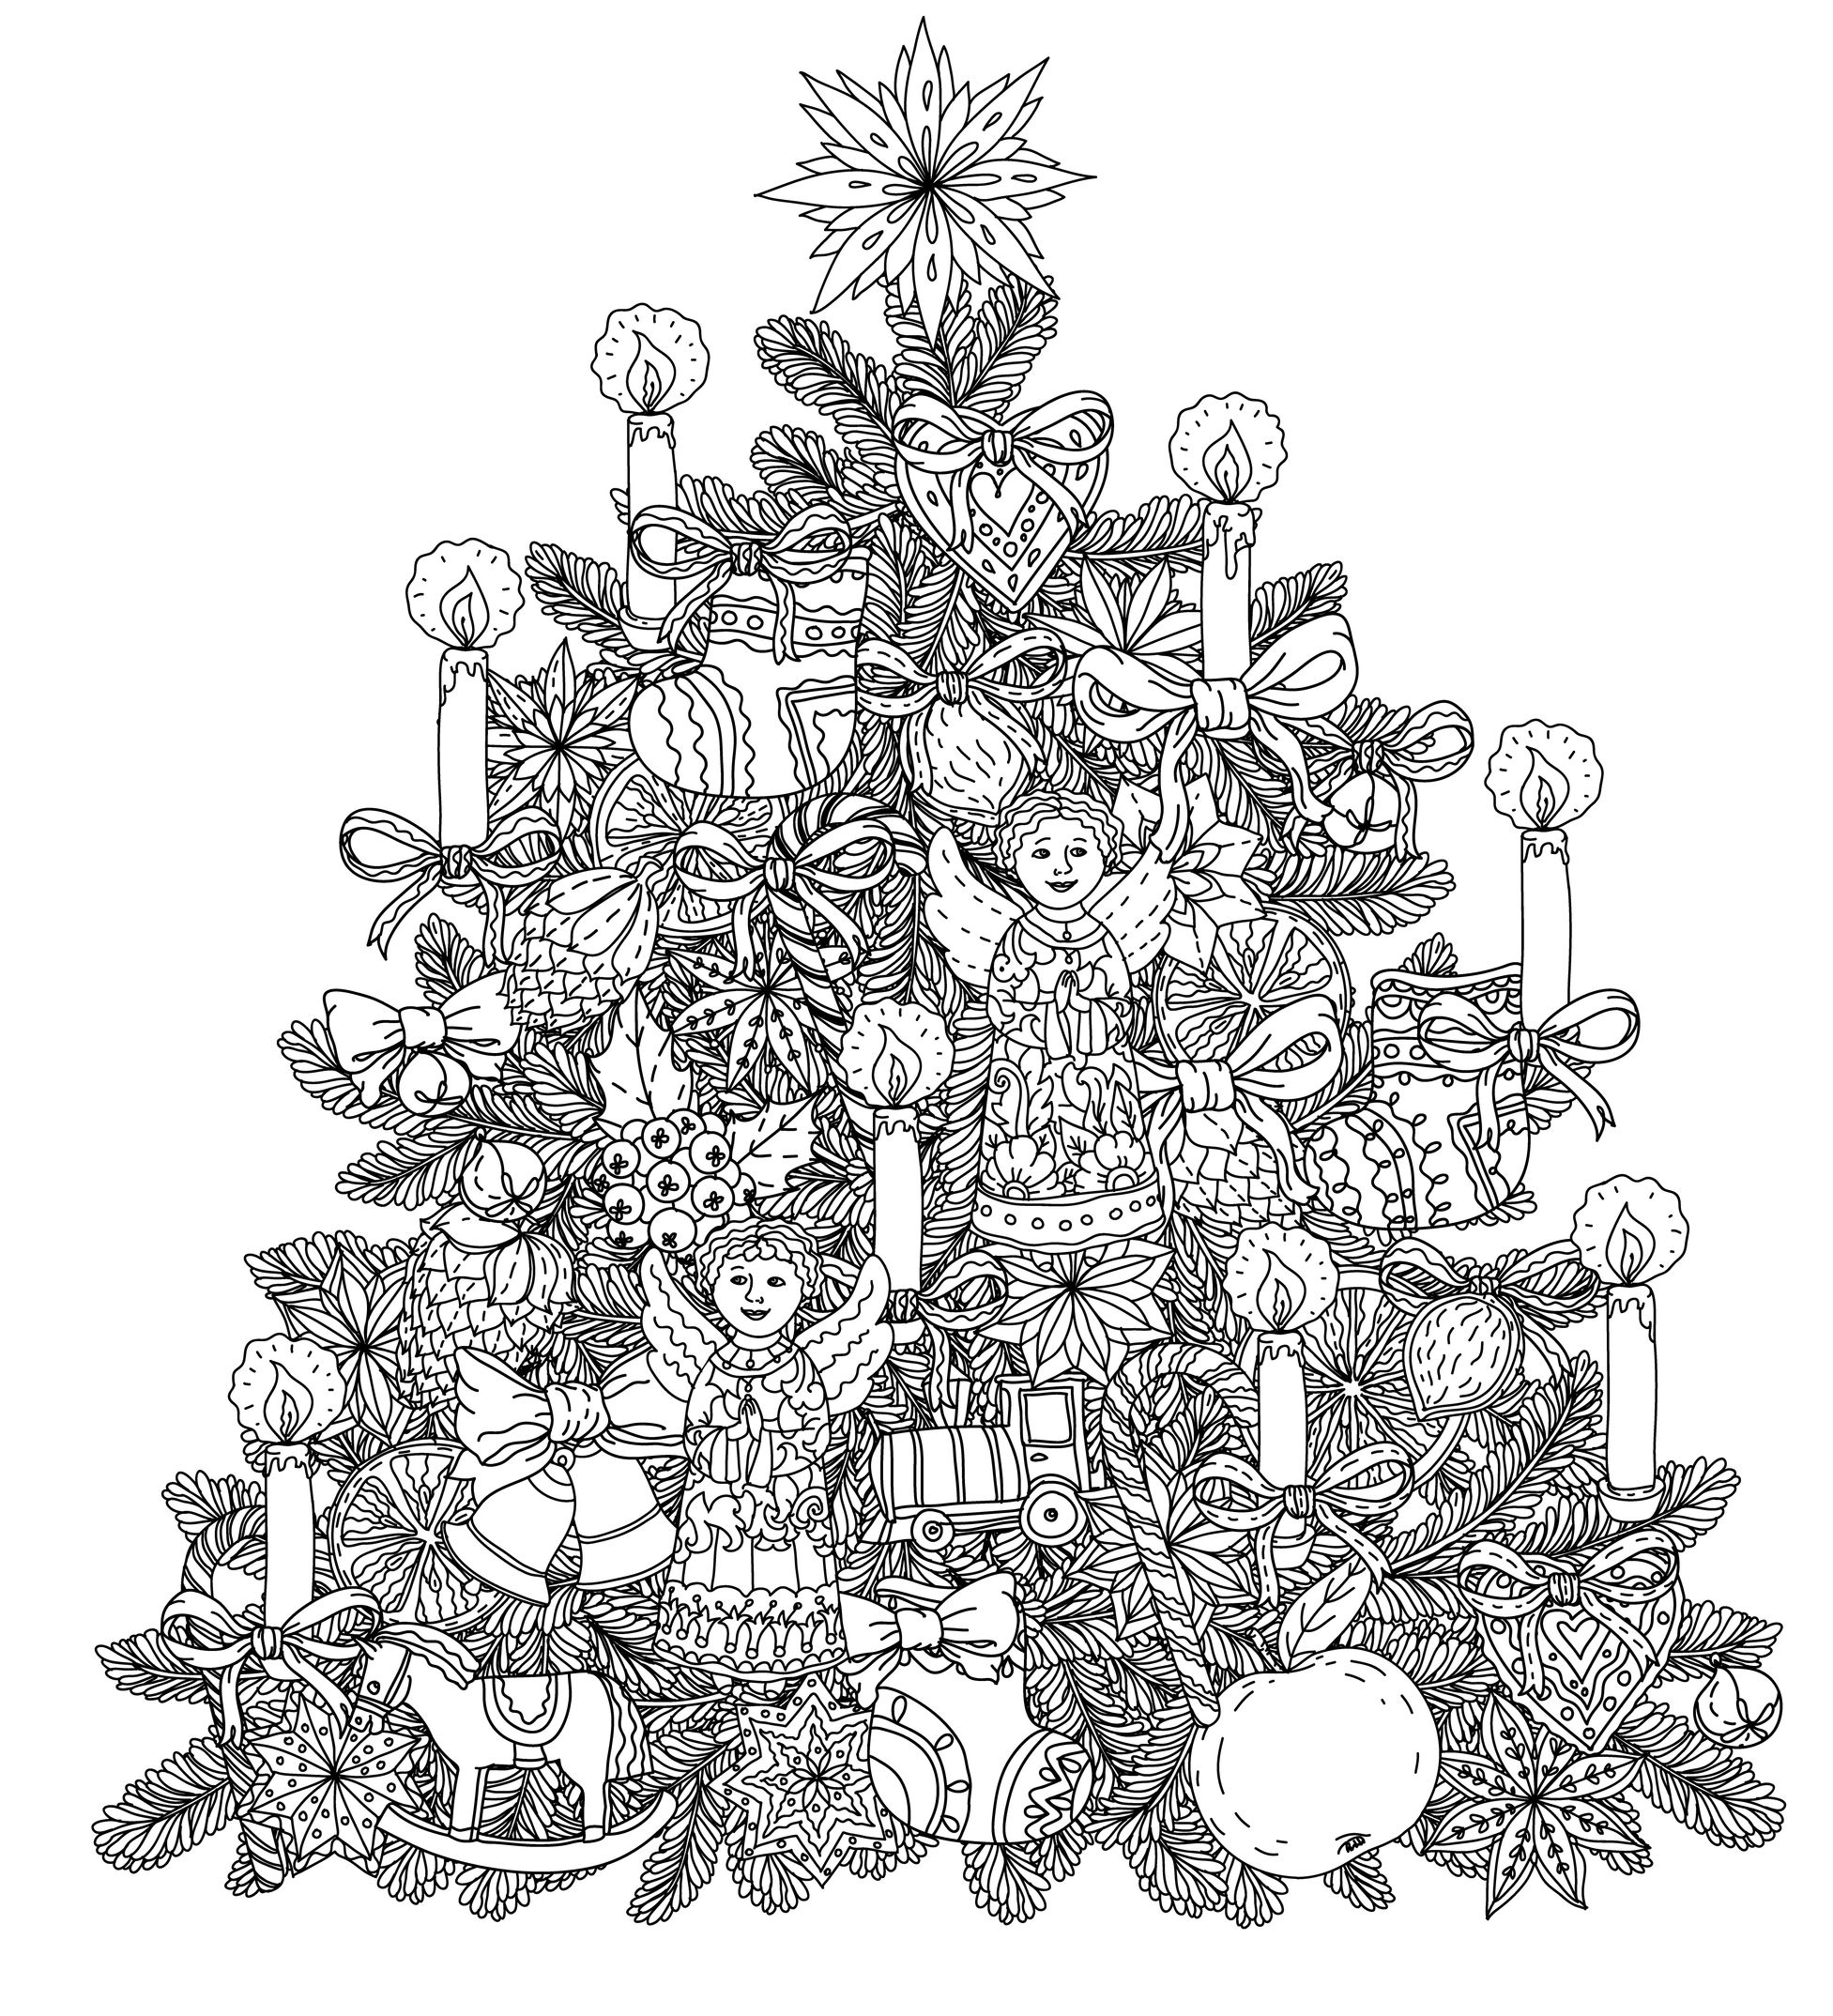 Christmas Tree With Ornaments - Christmas Adult Coloring Pages - Free Printable Christmas Tree Ornaments To Color